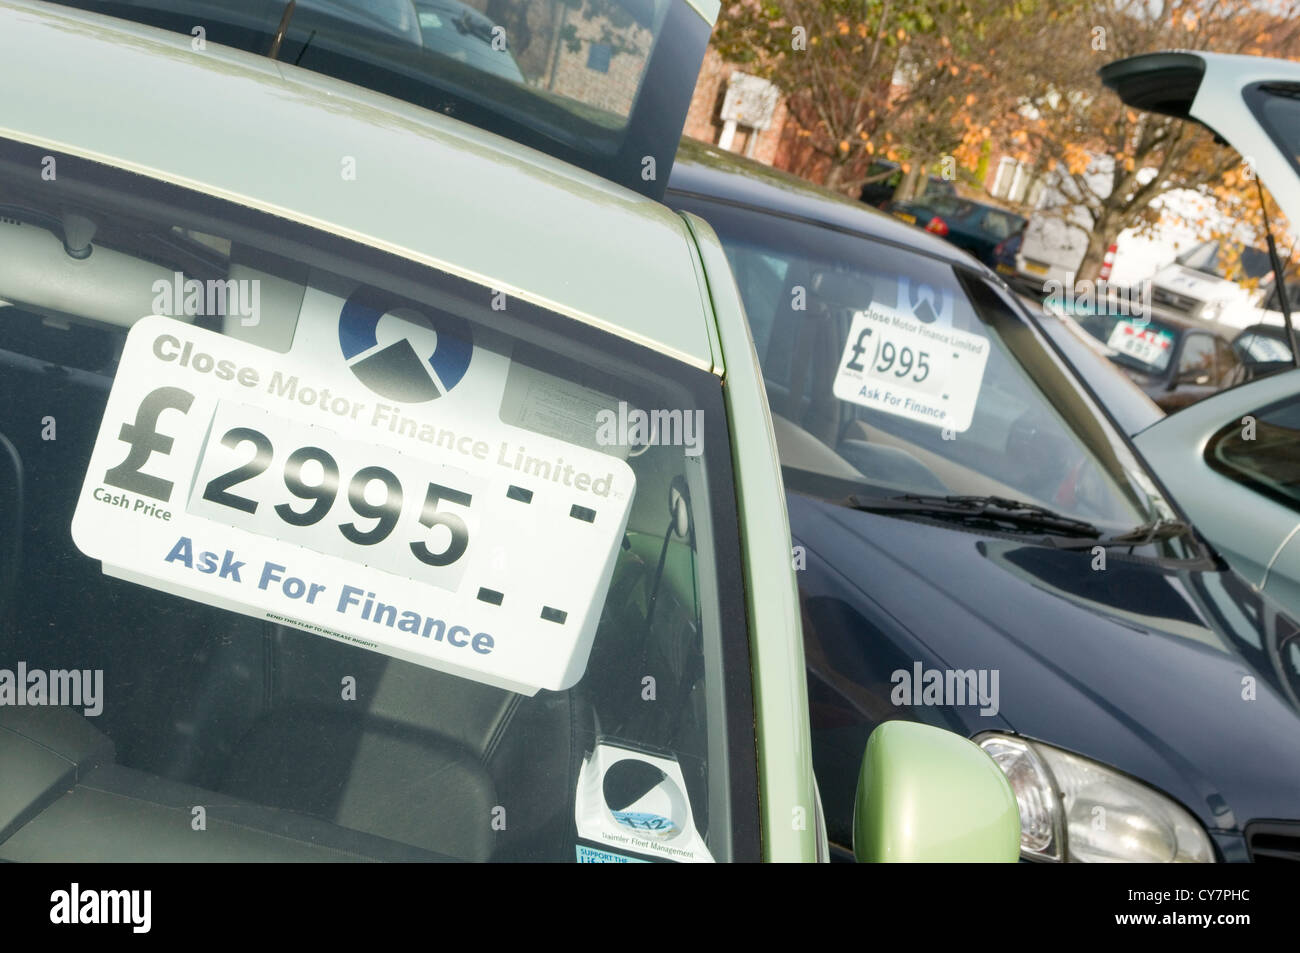 Old Used Car For Sale Stock Photos & Old Used Car For Sale Stock ...